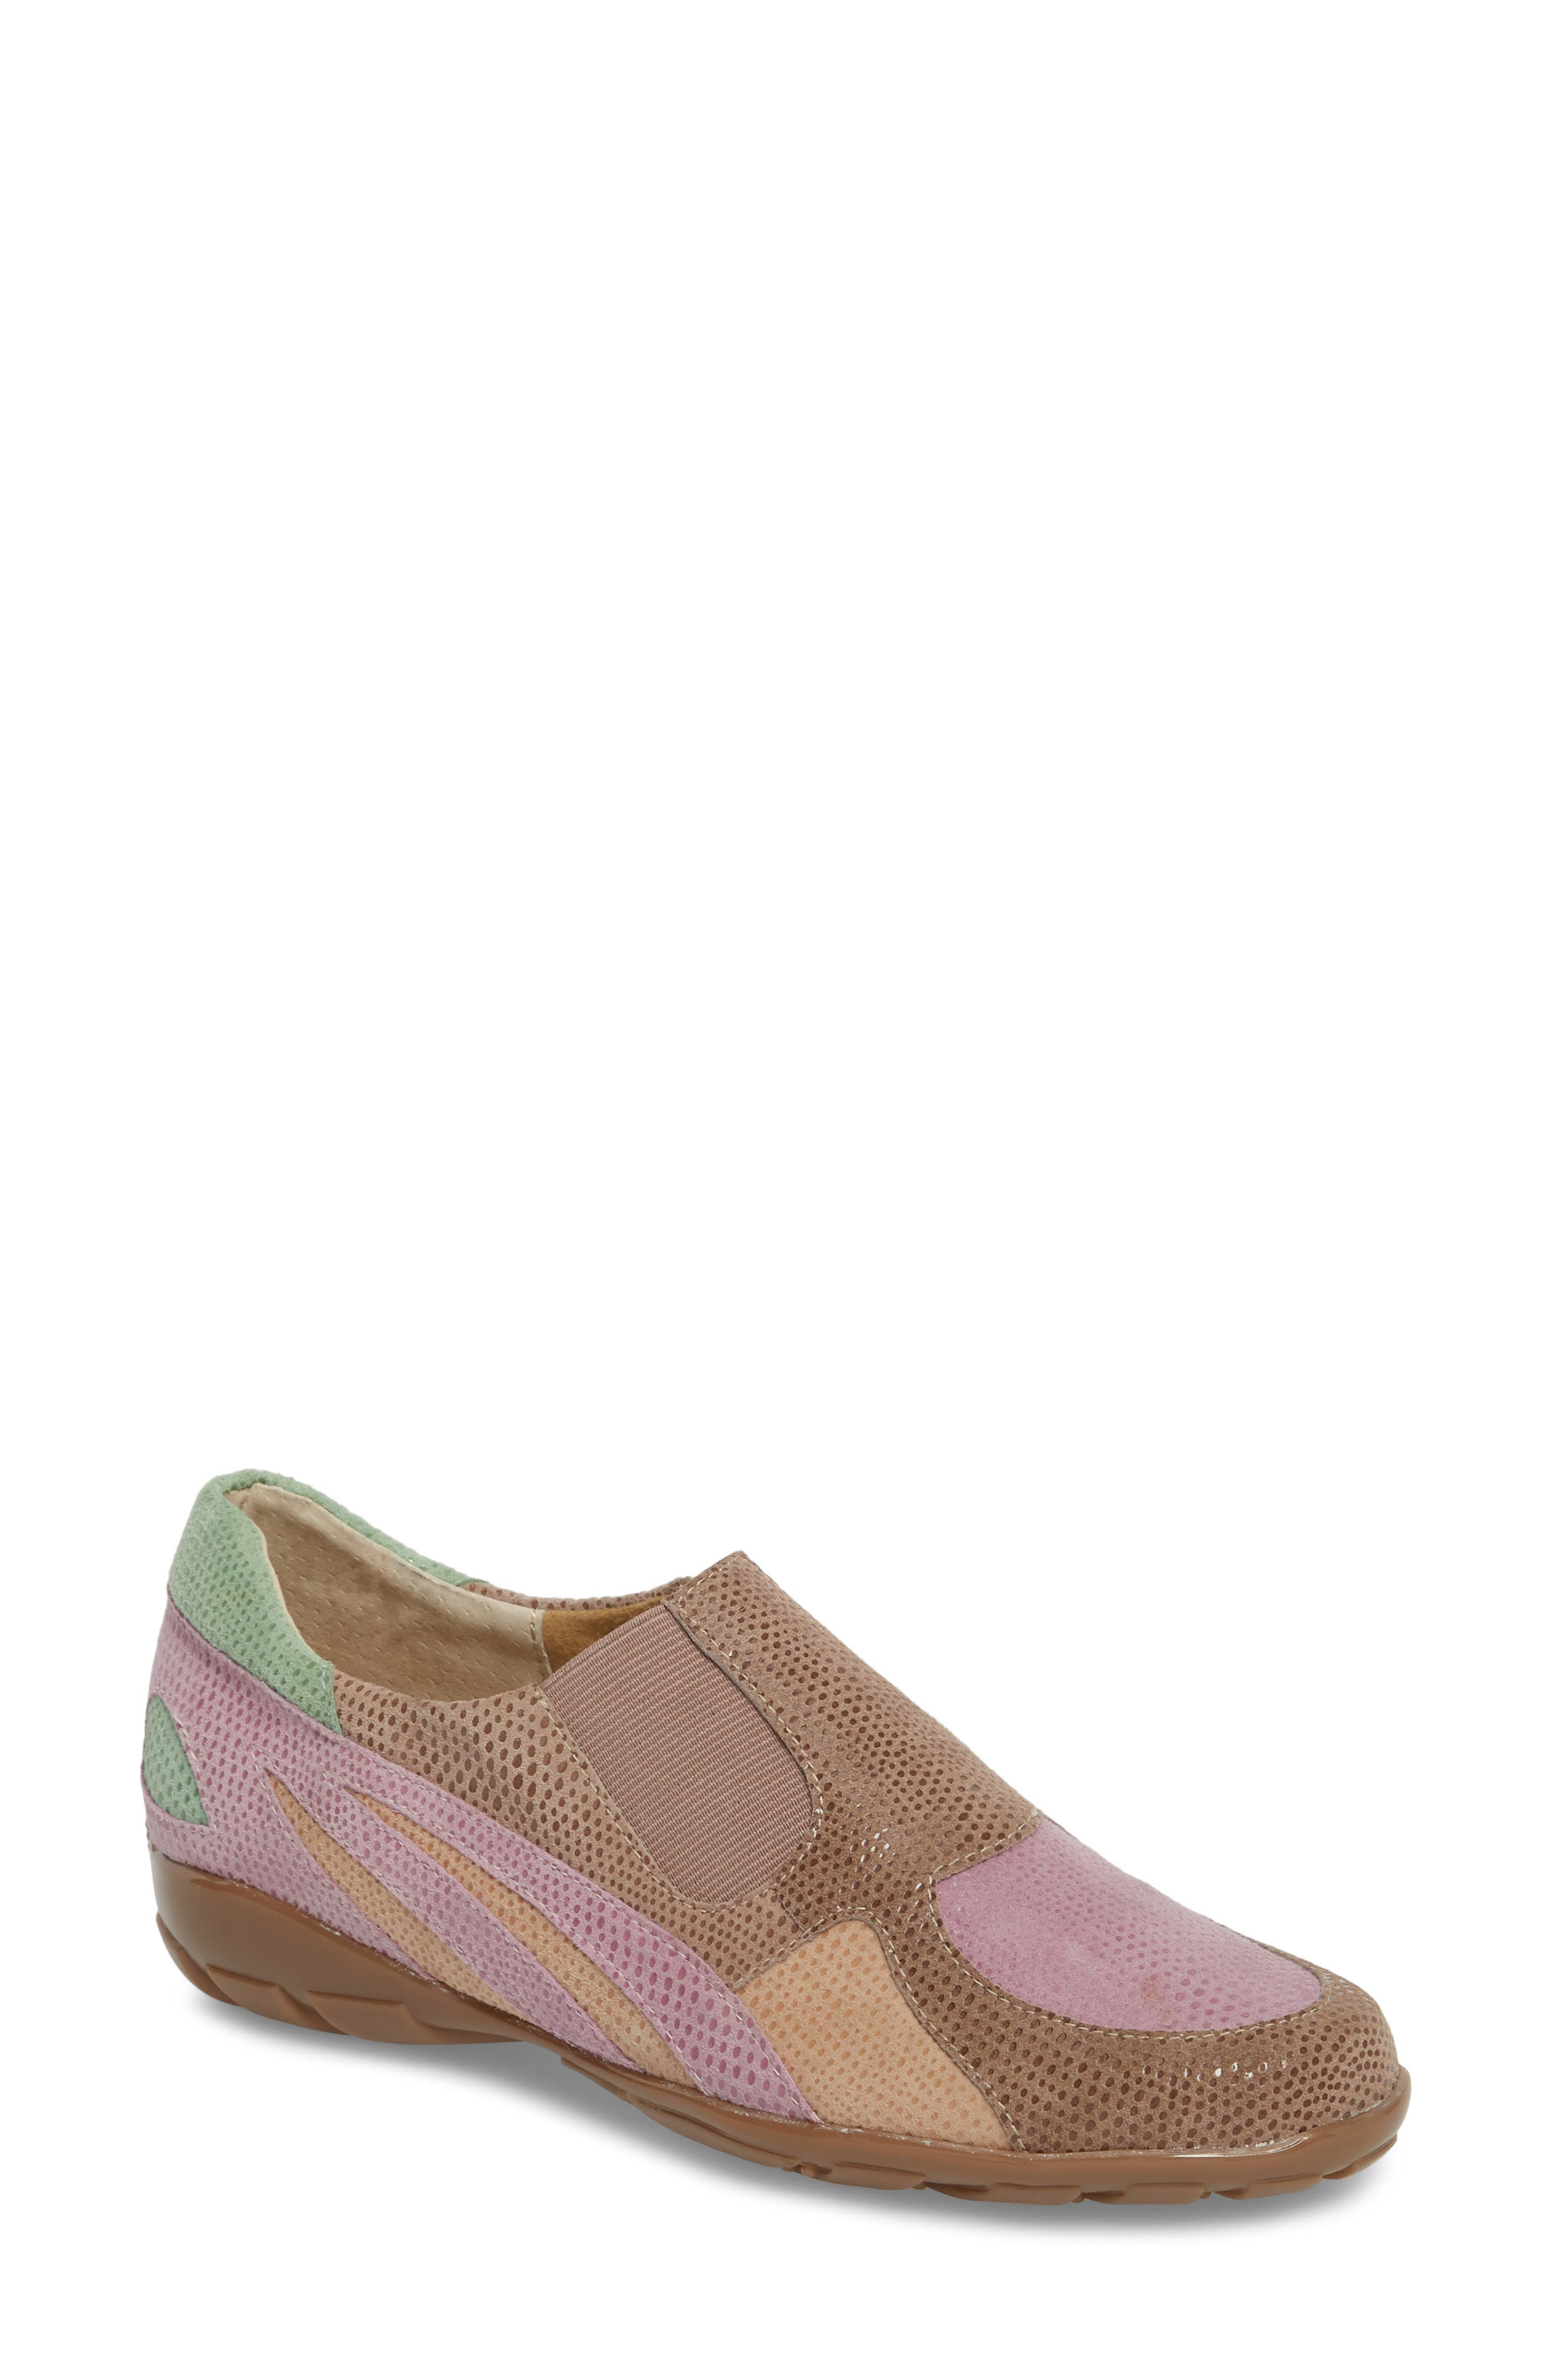 'Attie' Colorblock Slip-On Flat,                             Main thumbnail 1, color,                             Wisteria Printed Suede